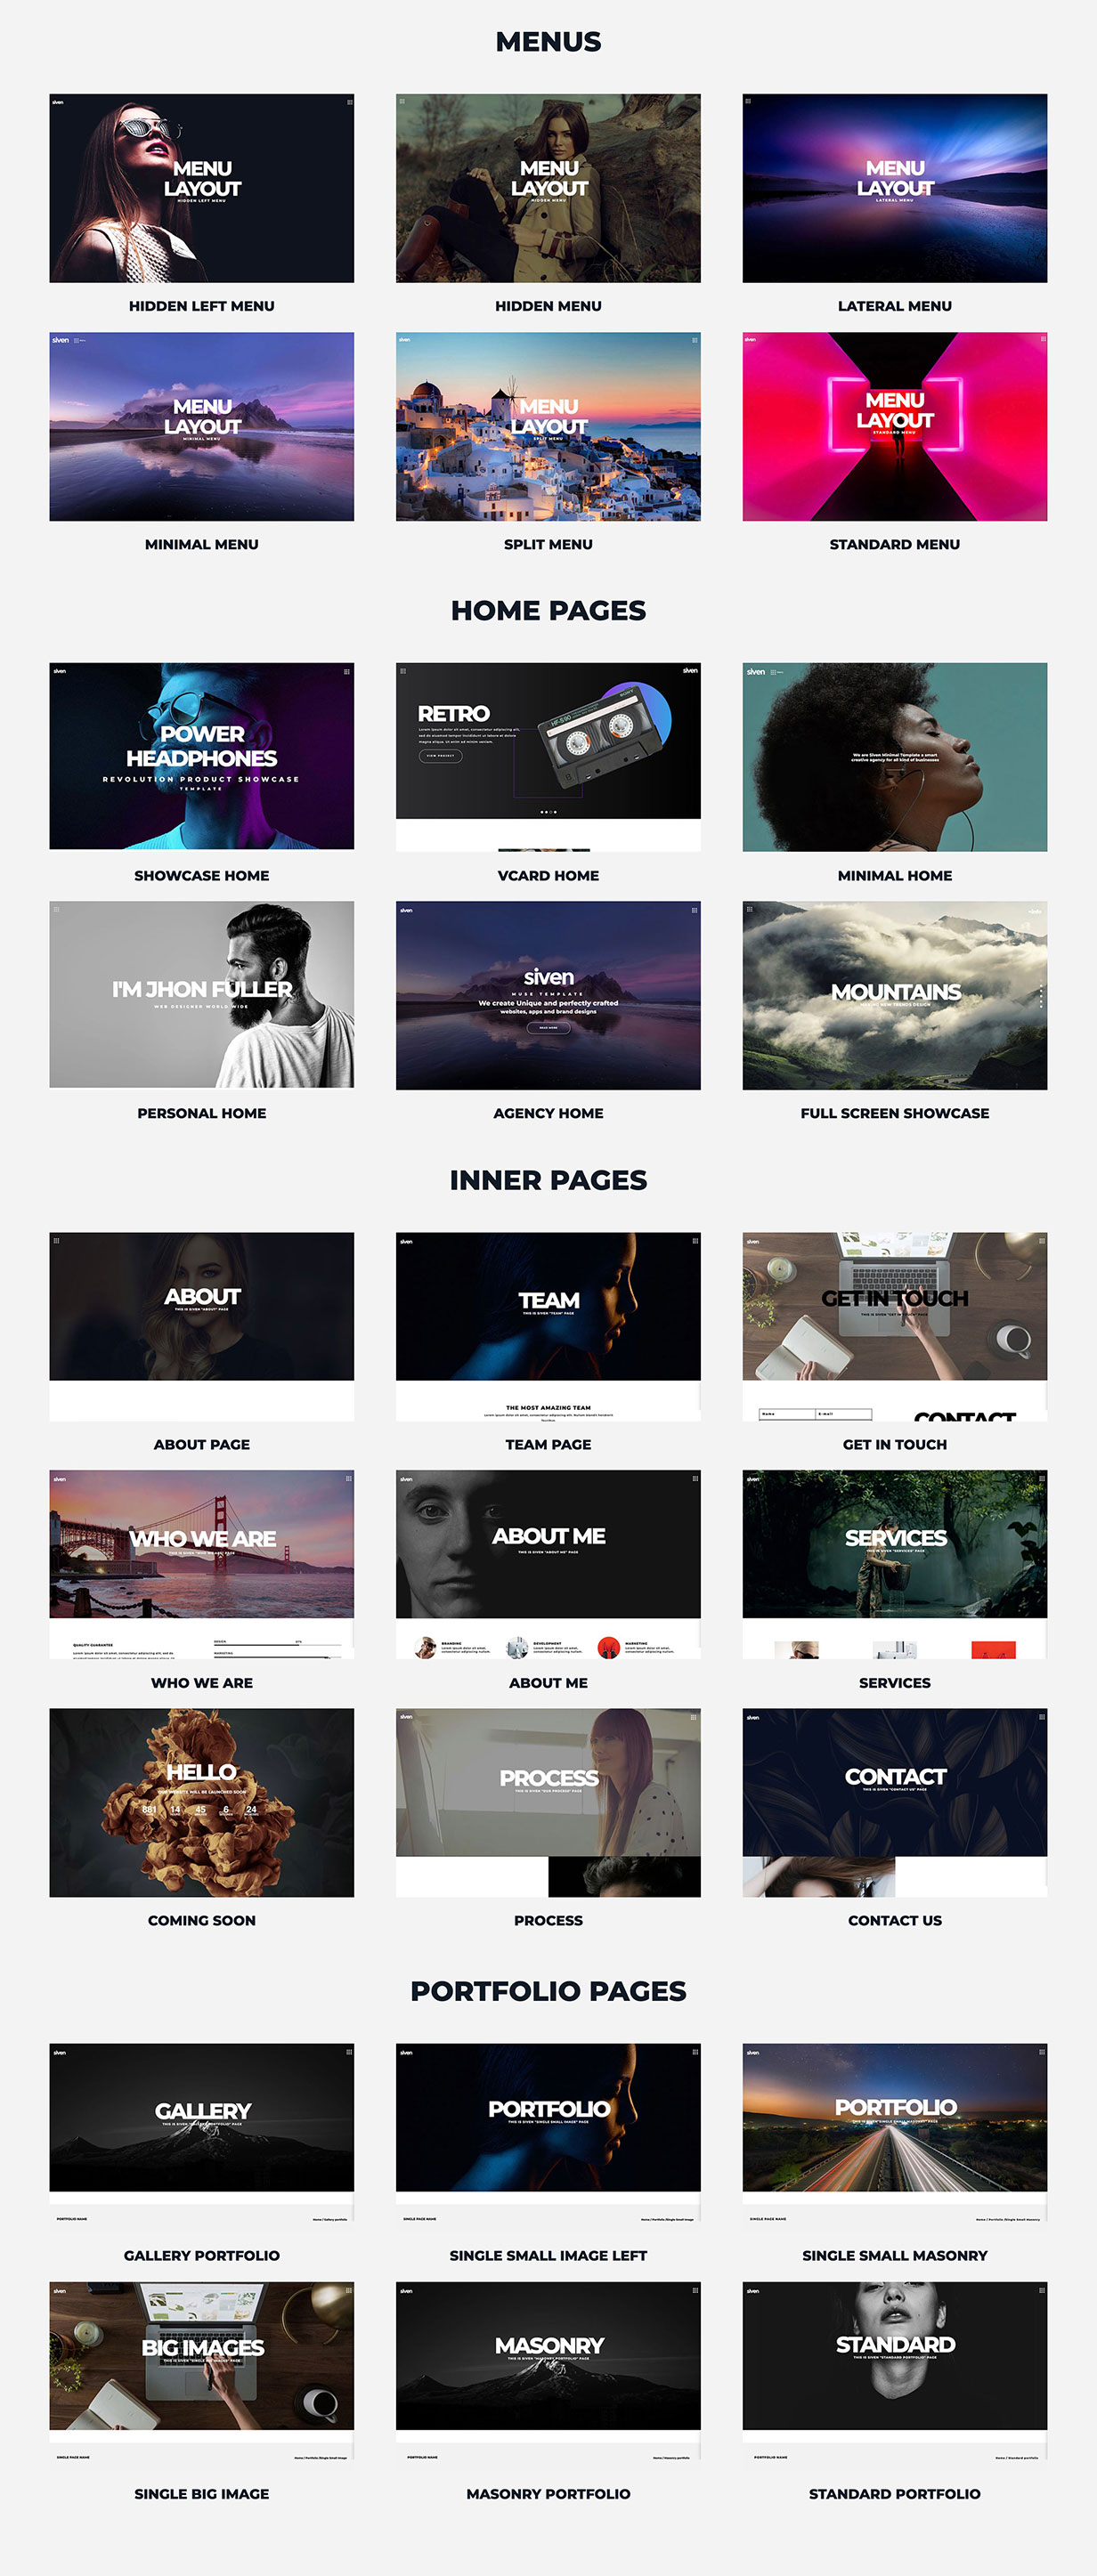 Siven - Adobe Muse Template - 2